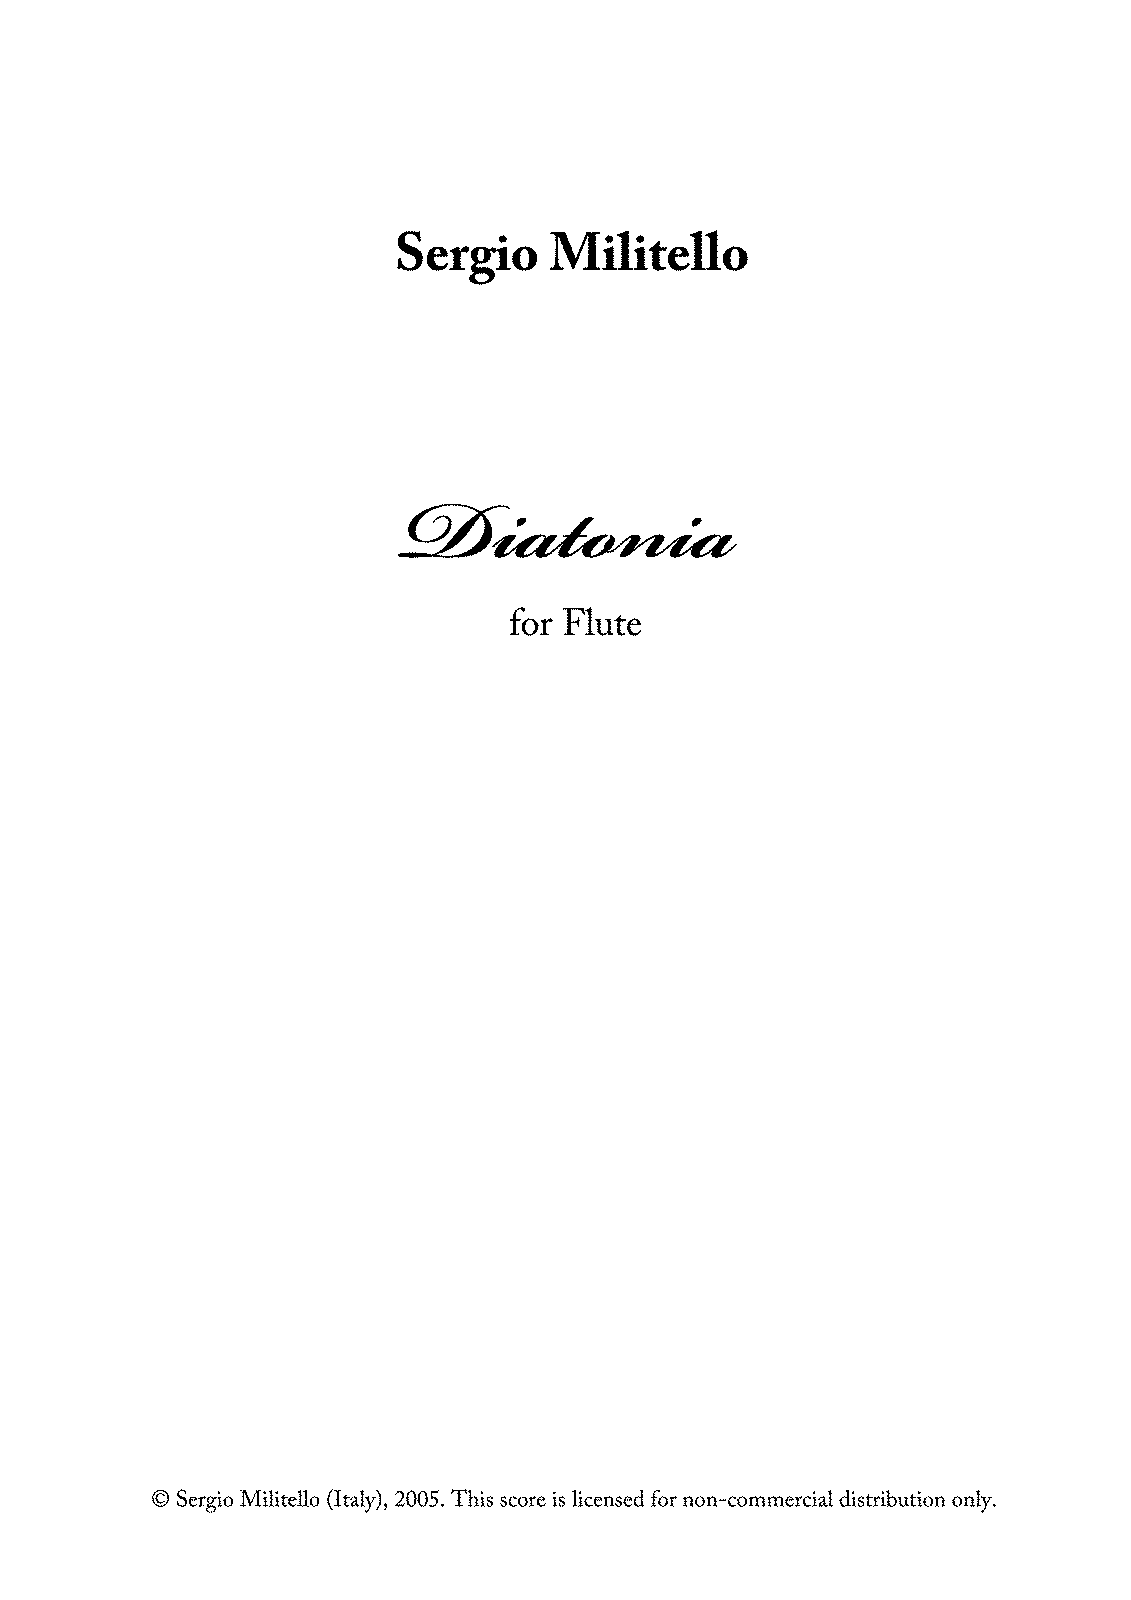 PMLP359808-Sergio Militello DIATONIA for flute.pdf